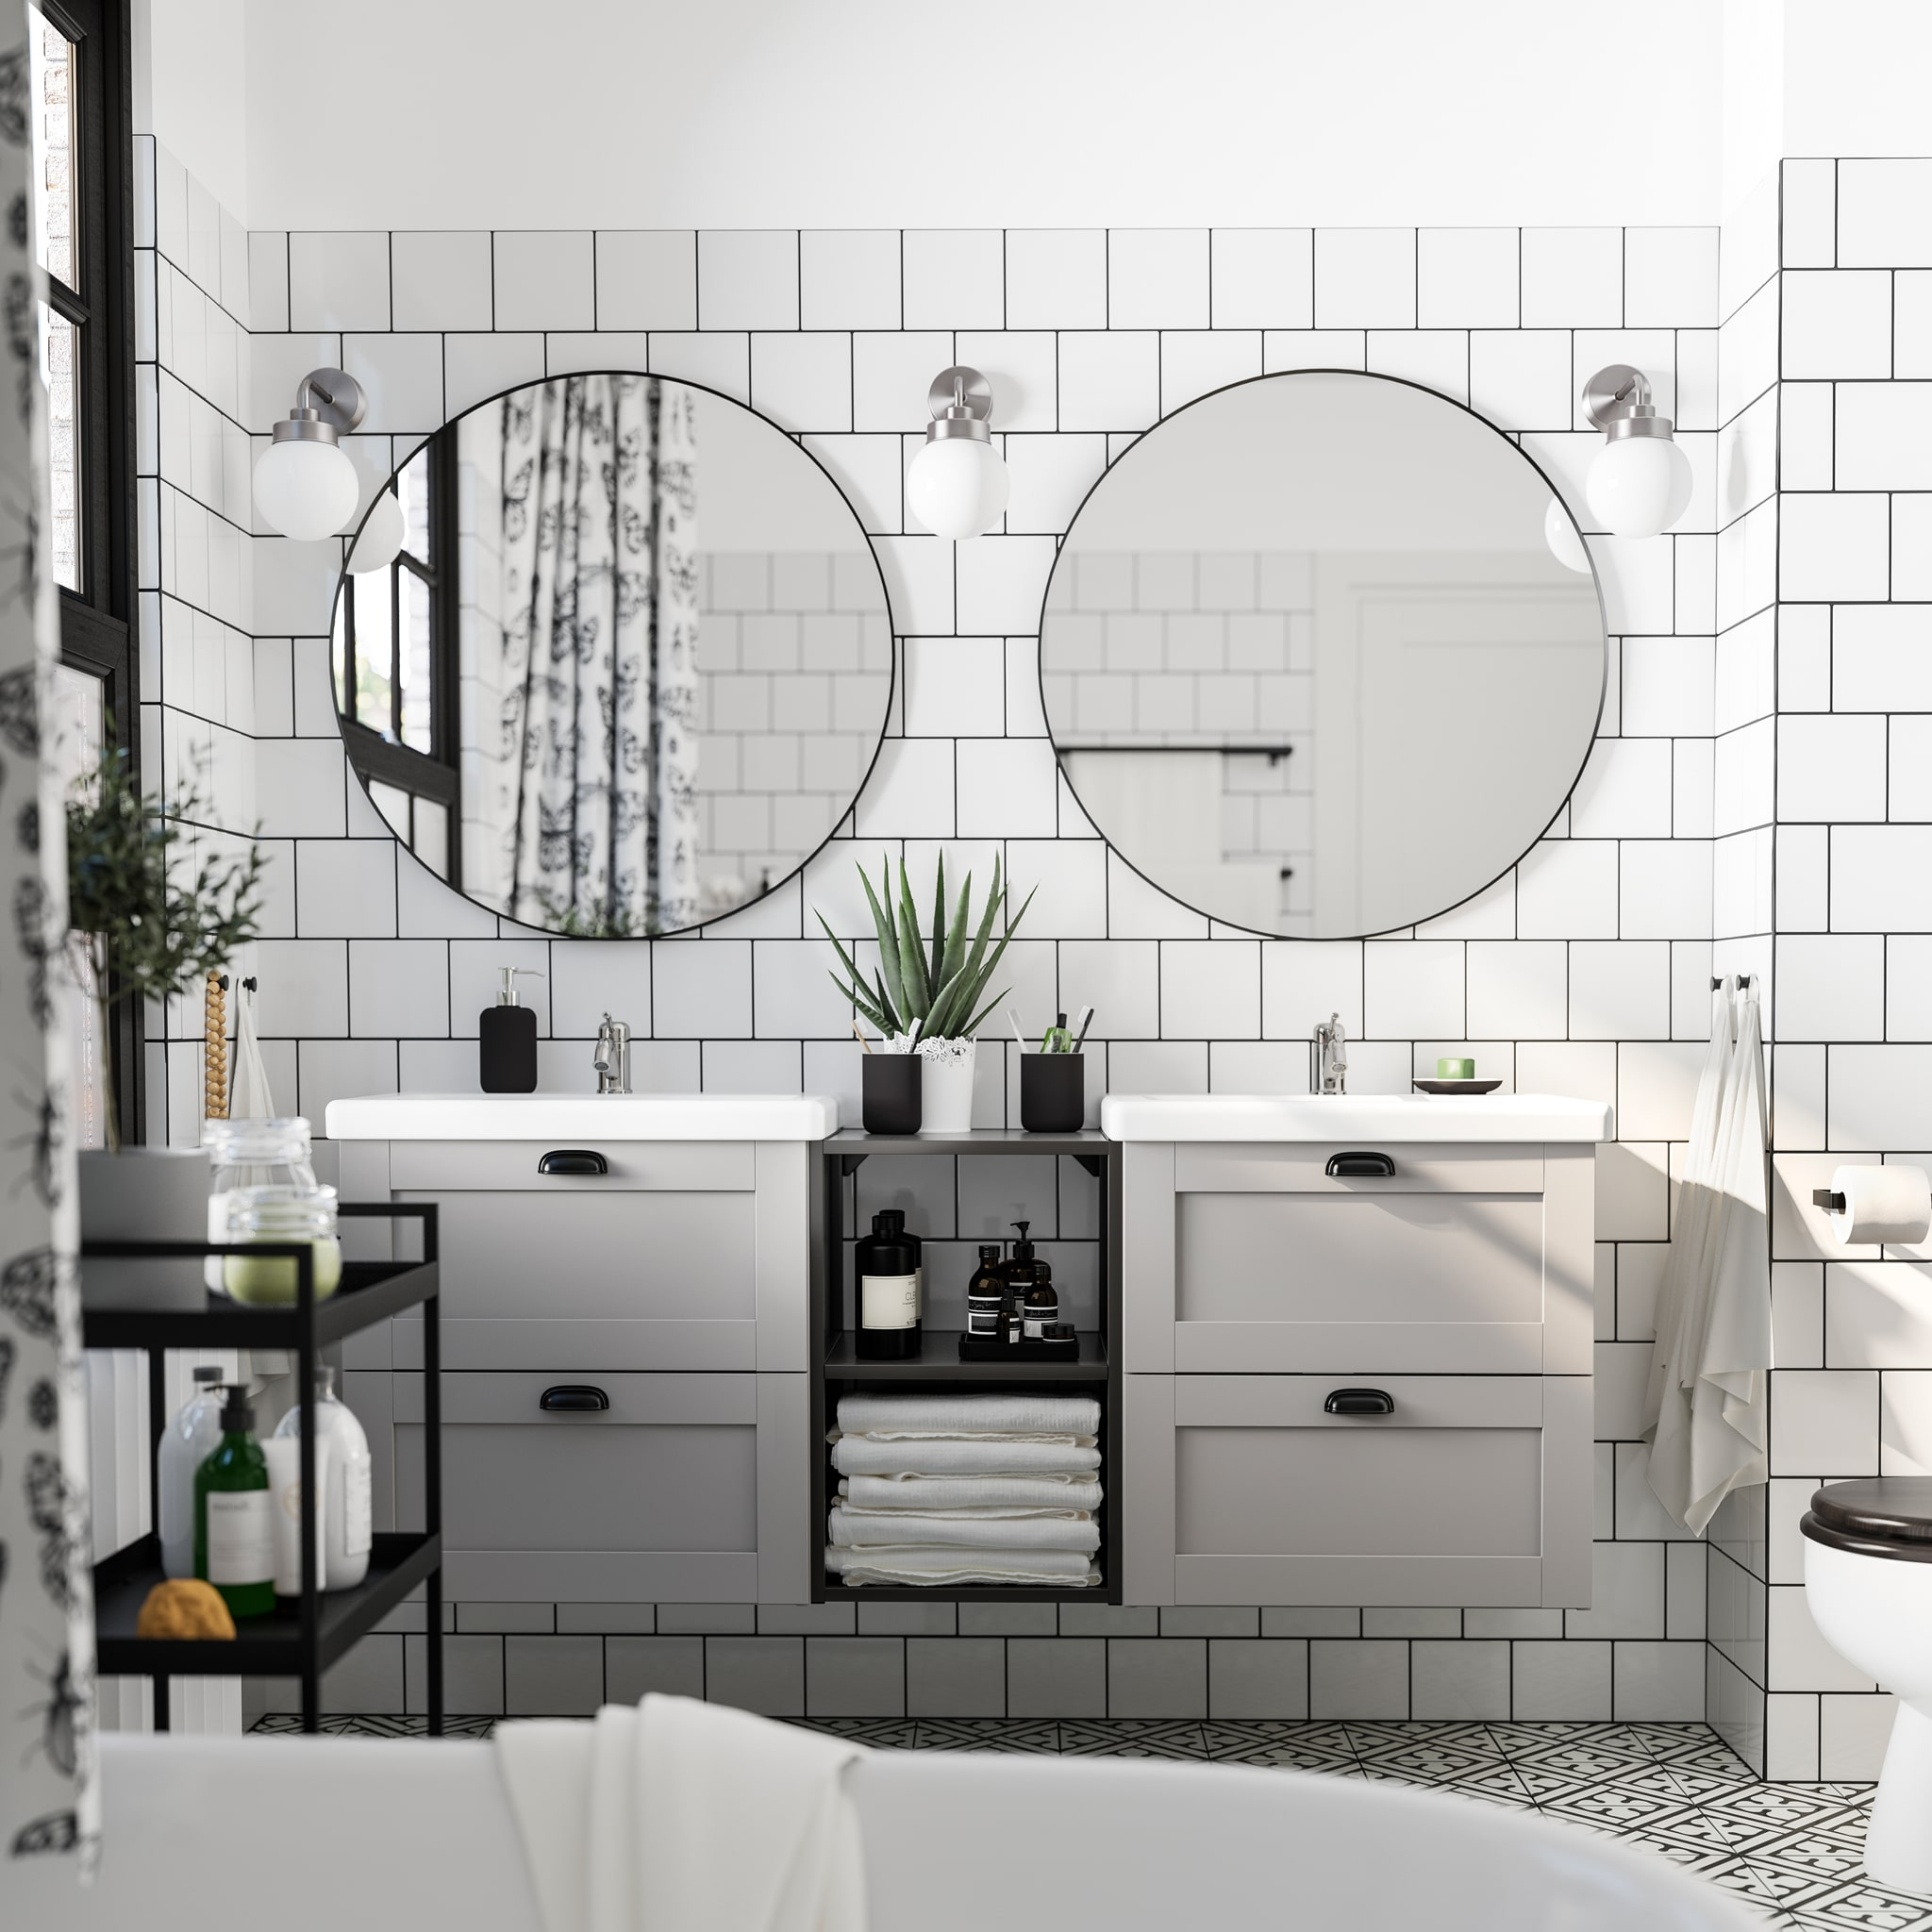 White-tiled bathroom with two round mirrors, two wash-stands/wash-basins in grey/white, a black trolley and three wall lamps.